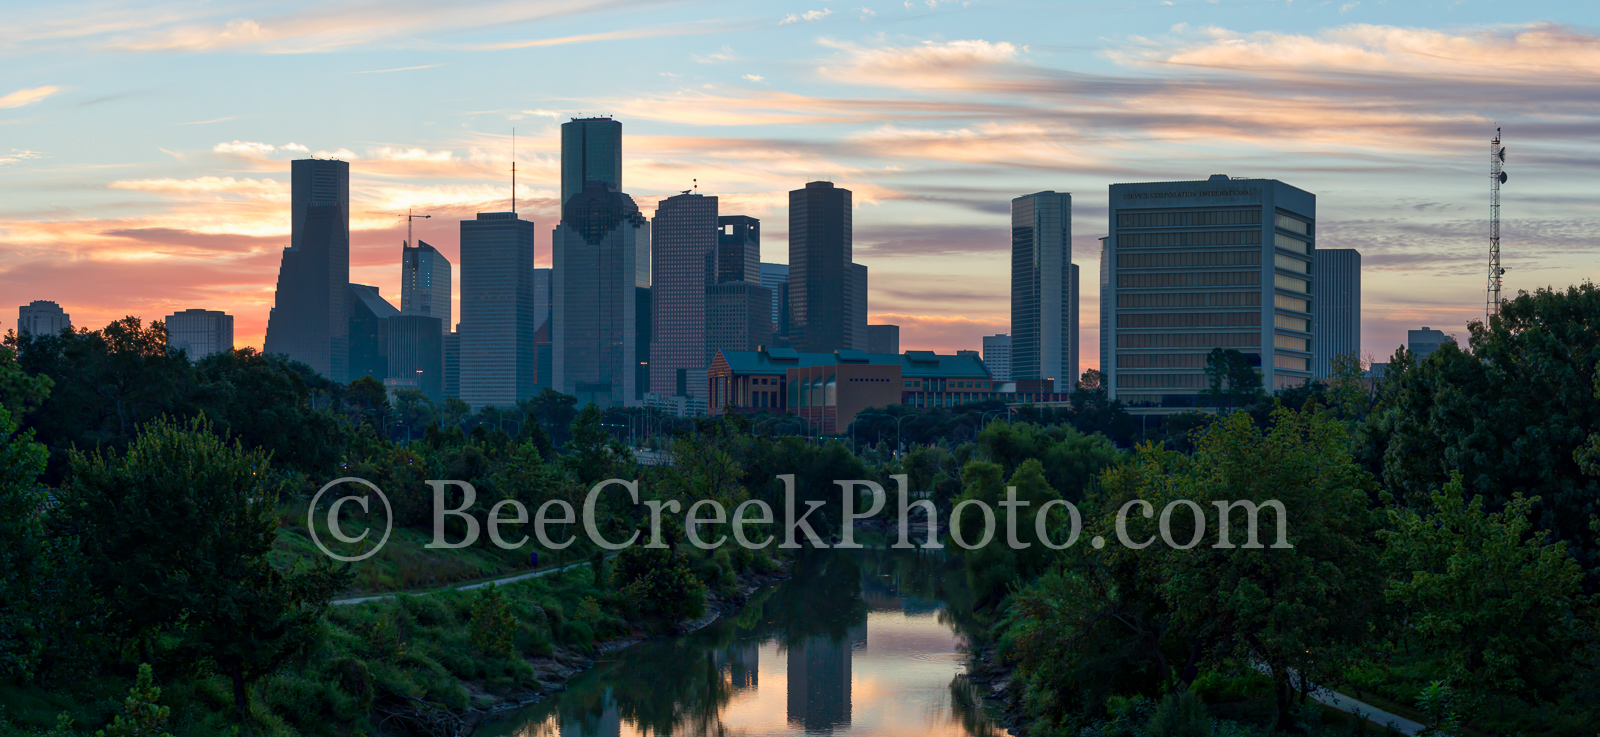 Houston, Sunrise, Buffalo Bayou skyline, buffalo bayou,  skyline, skylines, cityscape, cityscapes, downtown, water, reflections, pinks, oranges, sky, morning, city views, city,, photo